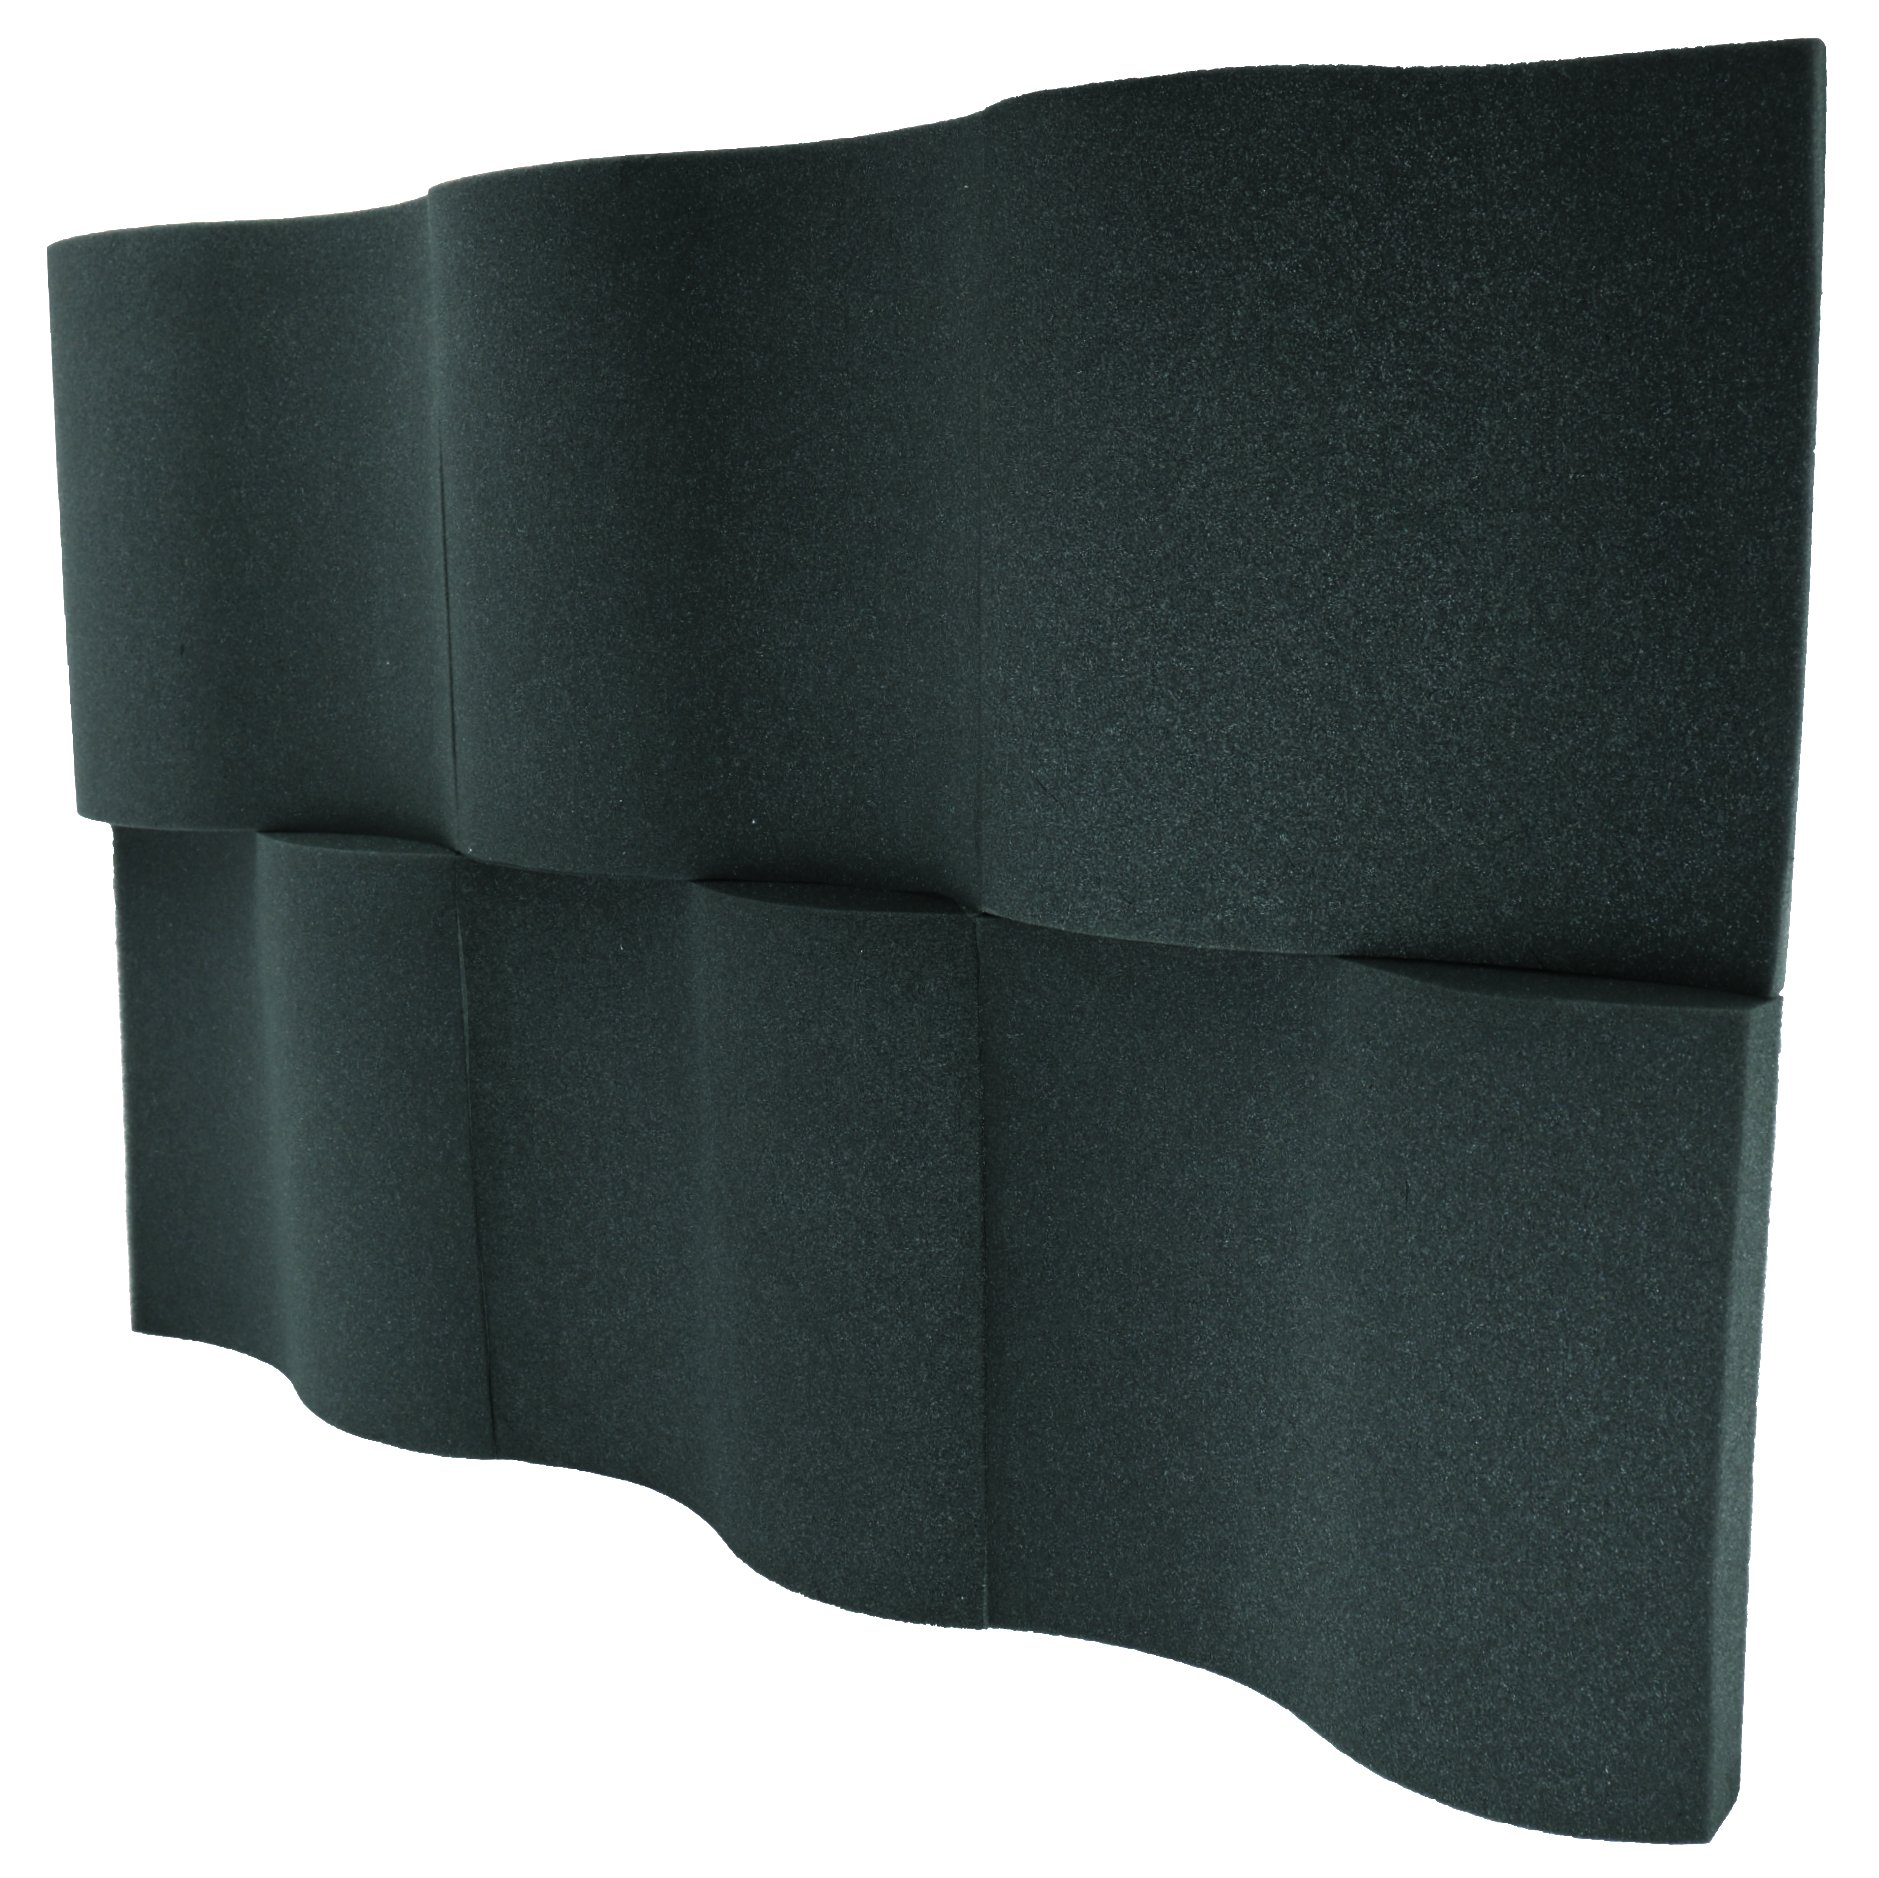 6 Pack - Decorative Acoustic Panels Studio Foam Waves 2'' X 12'' X 12''